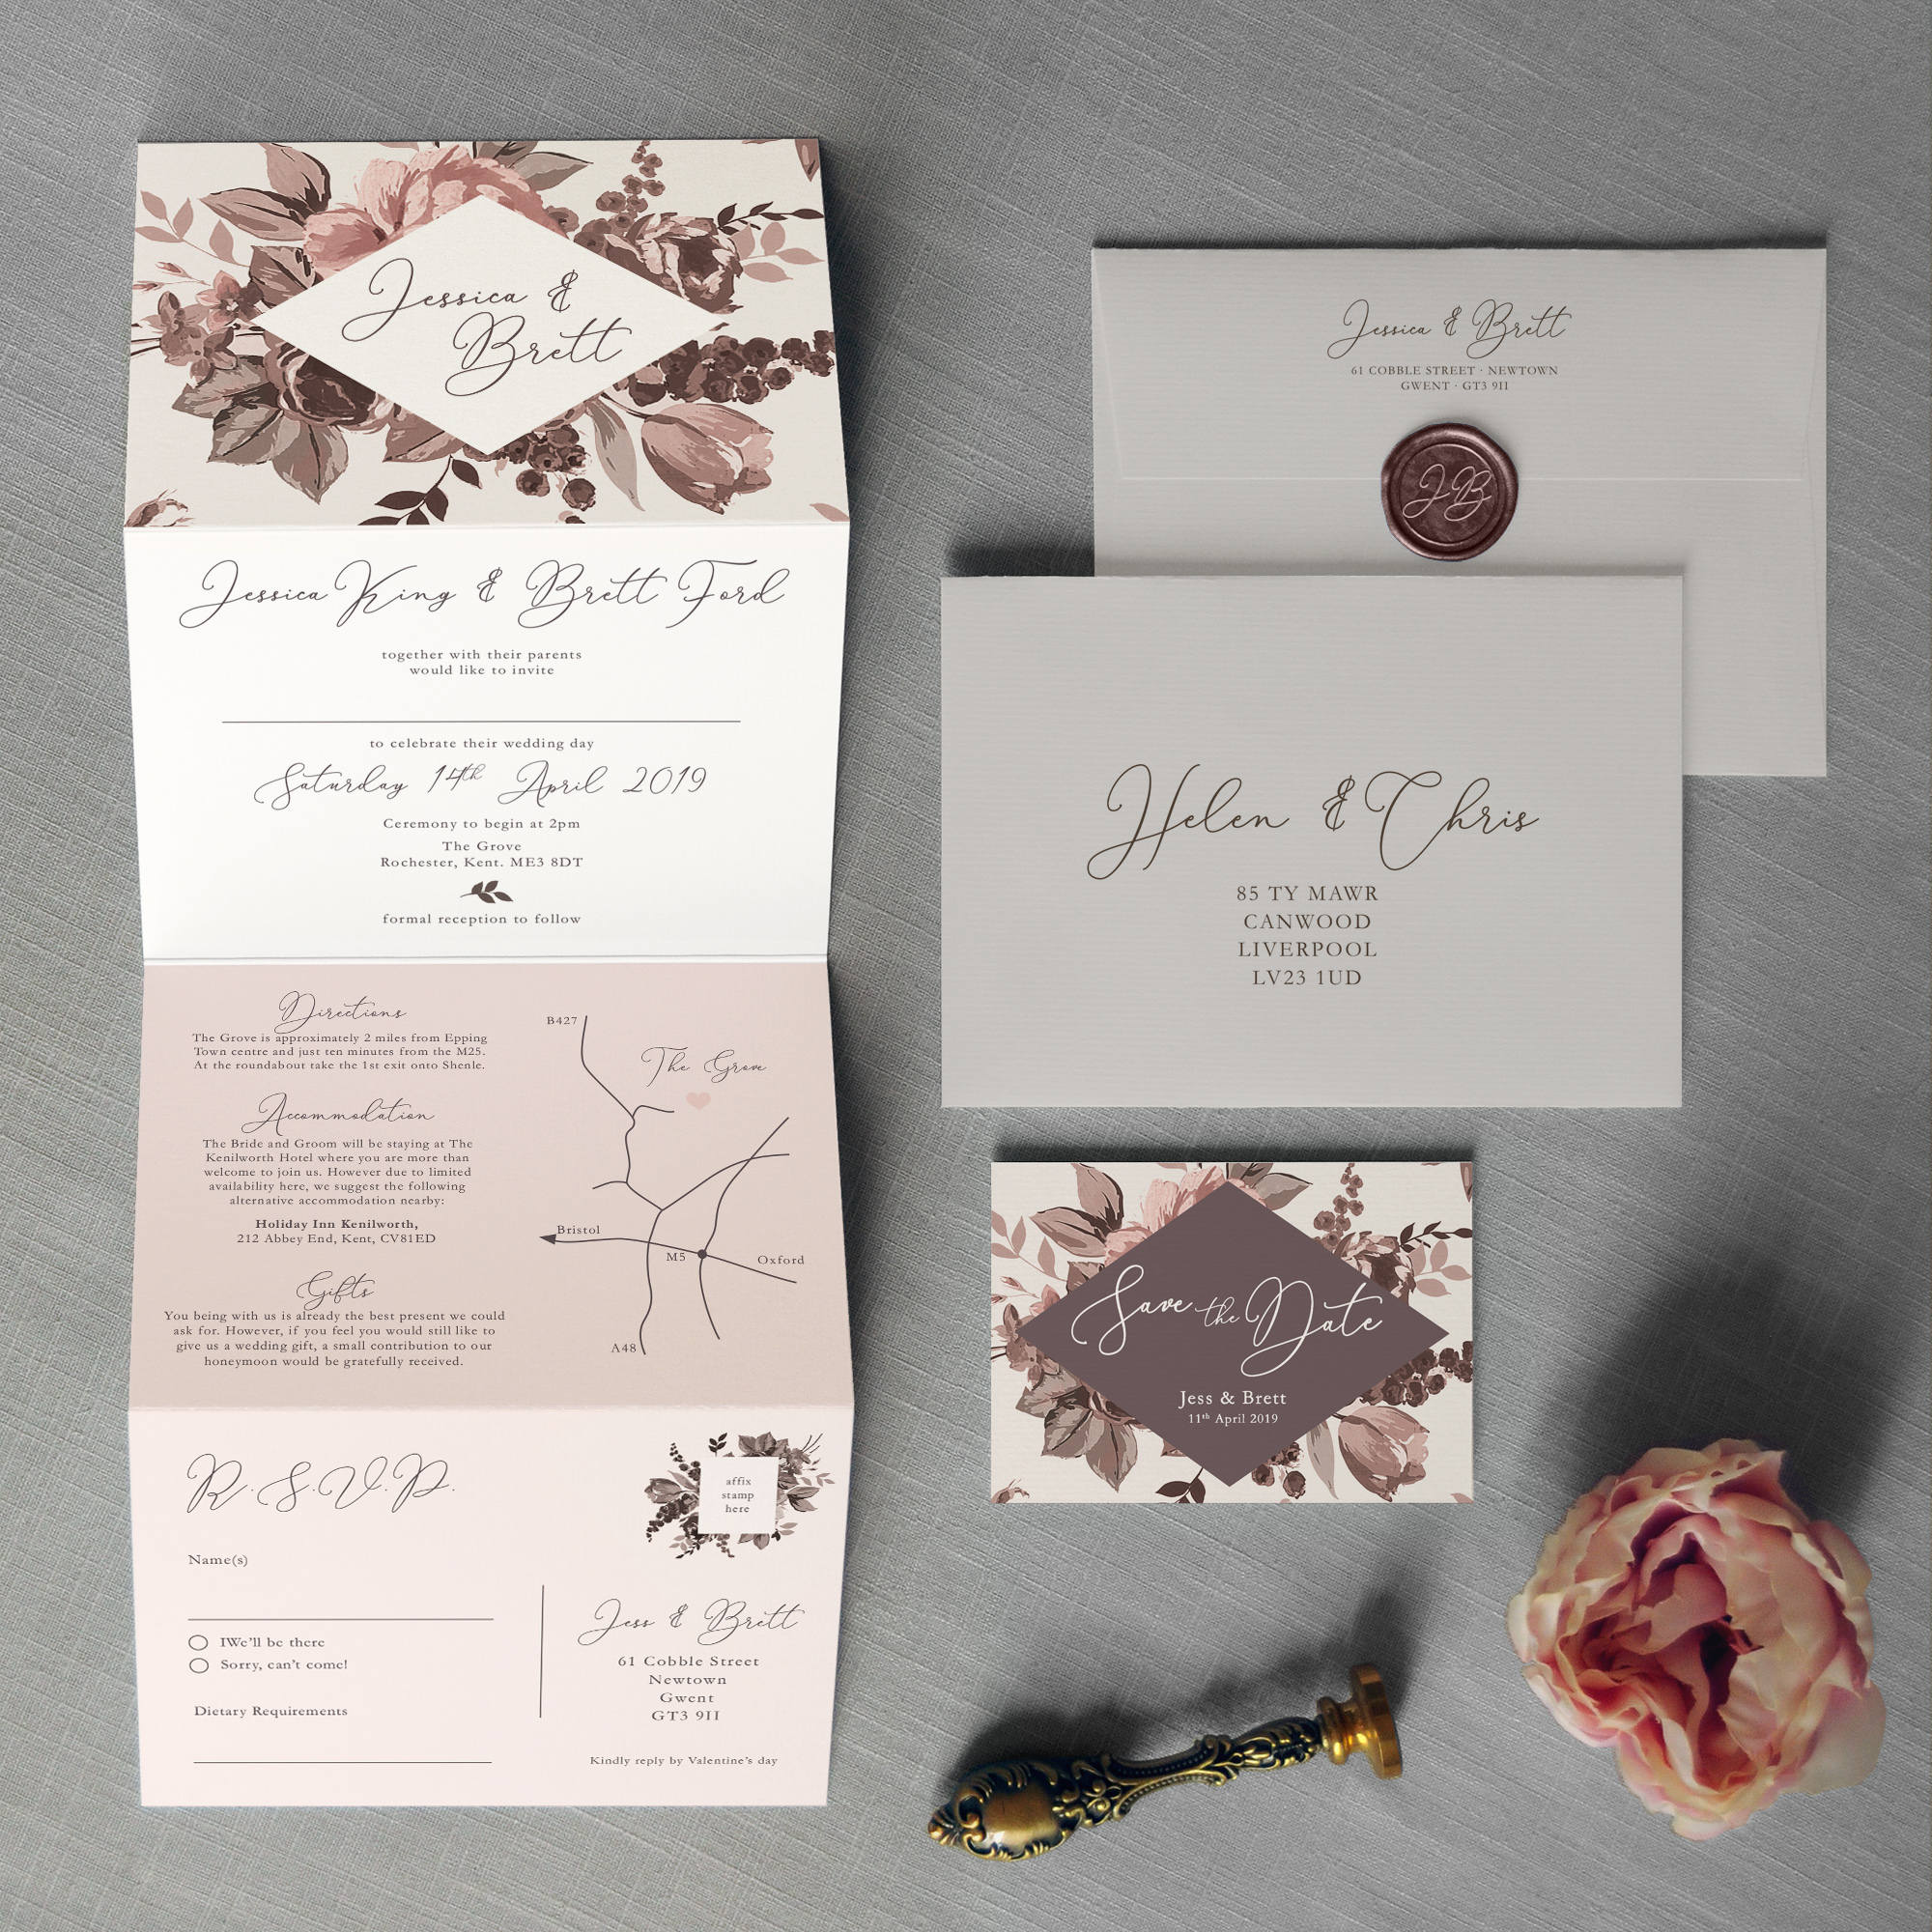 Belle concertina wedding invitations and save the date description belle concertina wedding invitation monicamarmolfo Choice Image